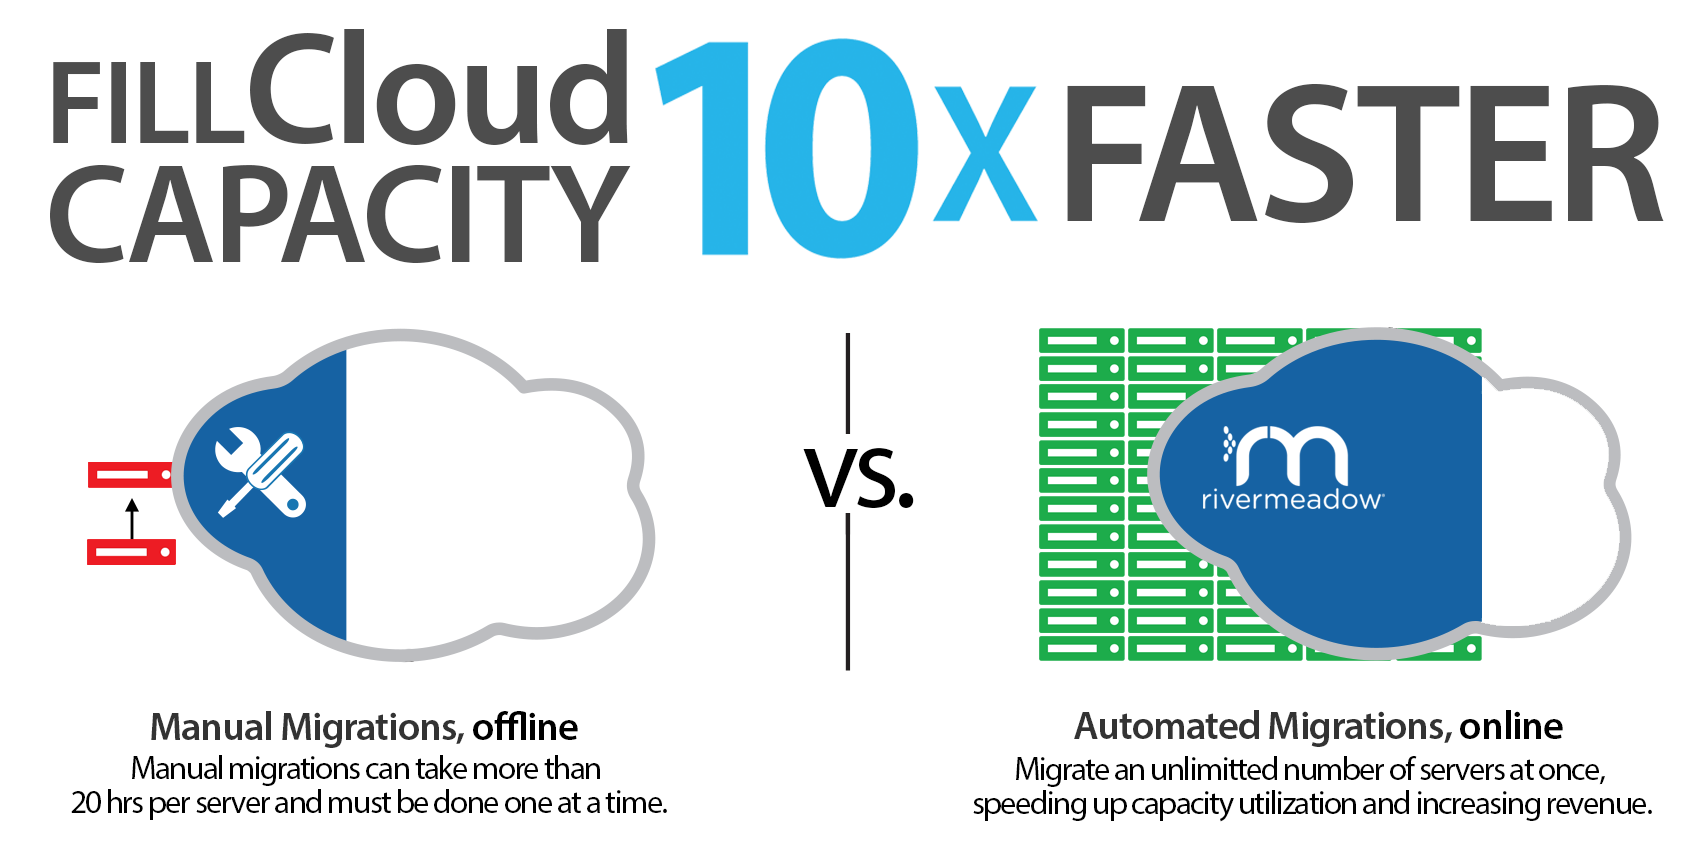 Fast Cloud Migration - 10x faster